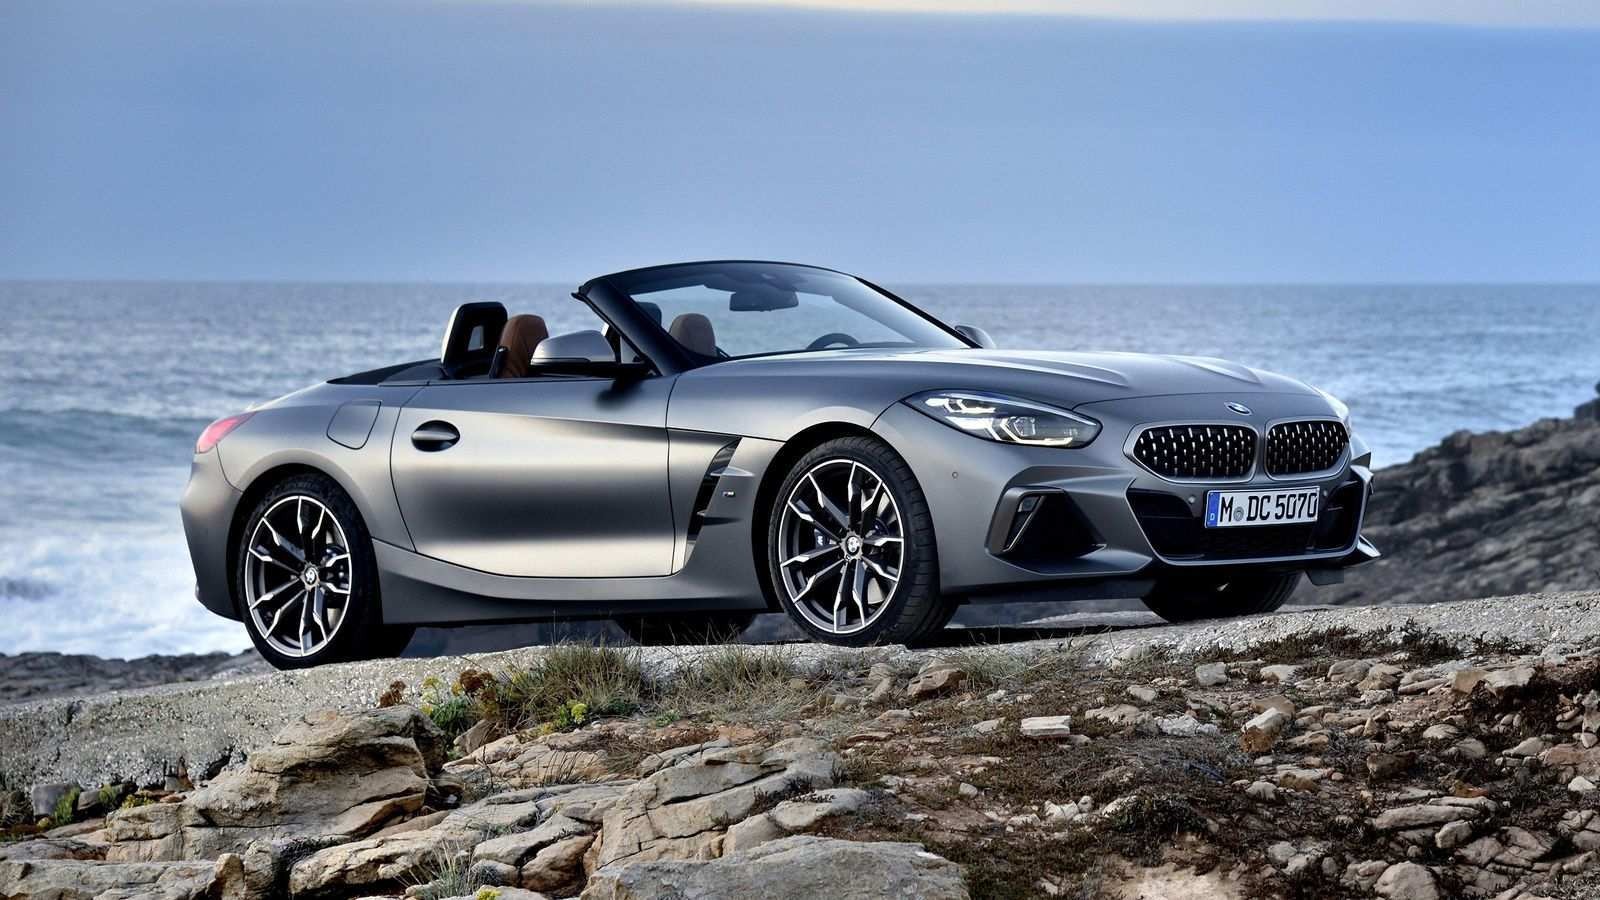 56 New Bmw Z4 2020 Specs Speed Test